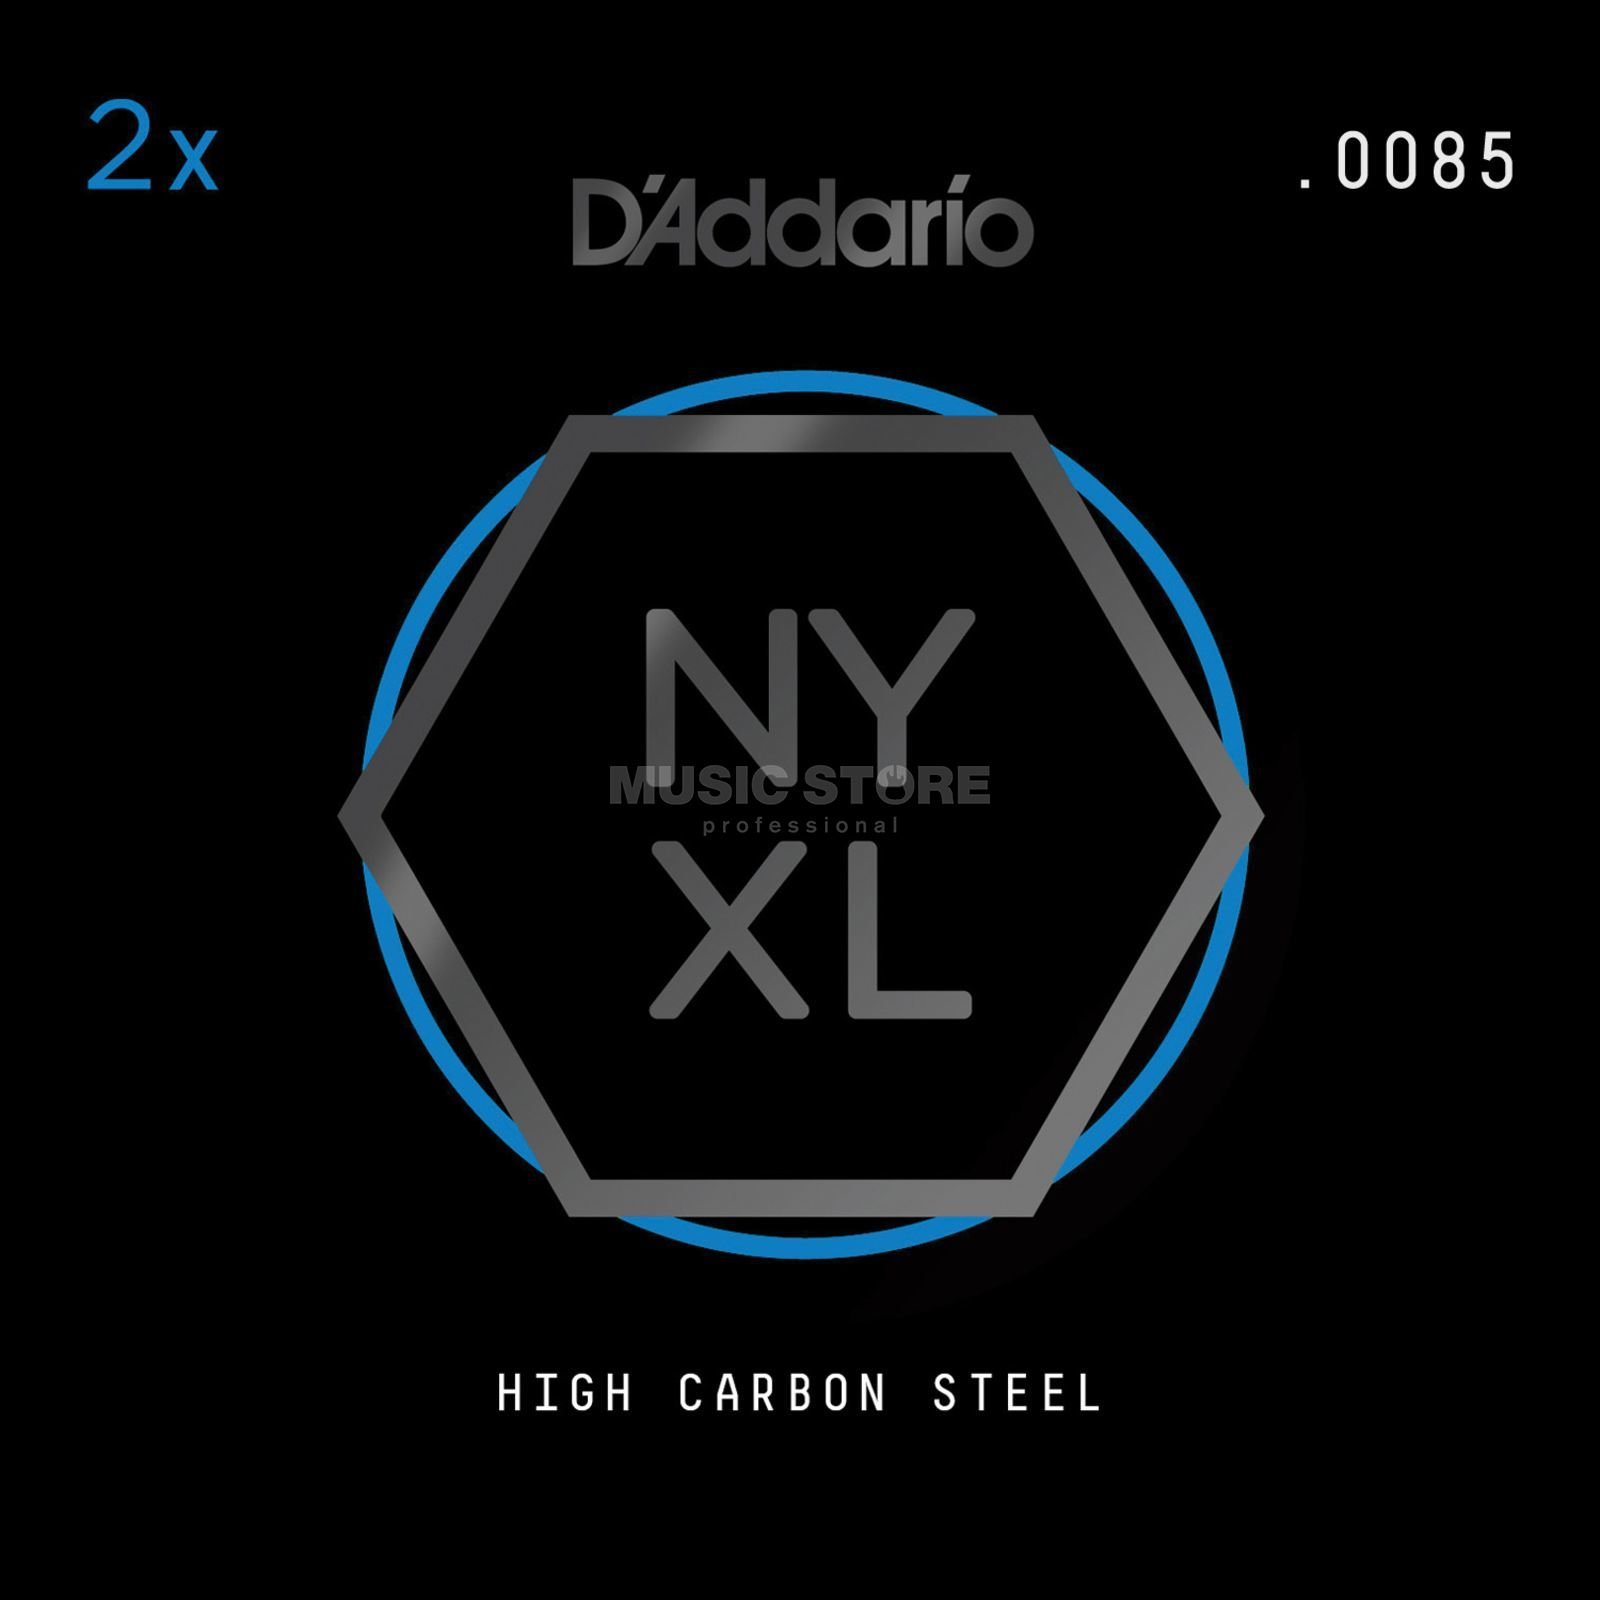 D'Addario NYPL0085 Plain Single String 2-Pack - High Carbon Steel Imagem do produto